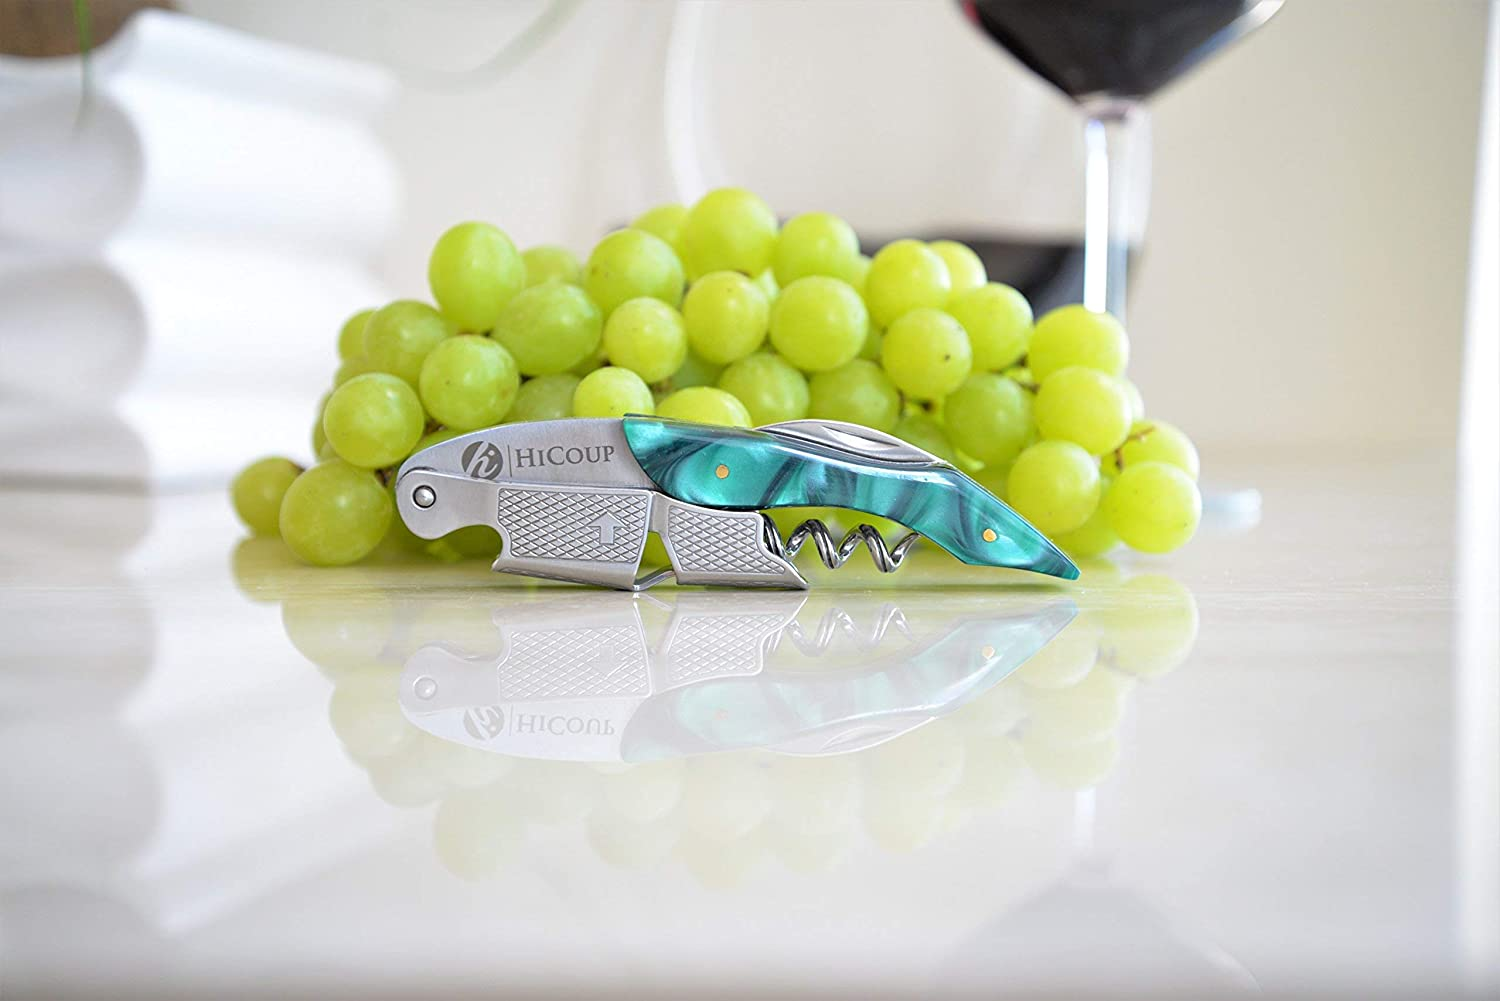 The Favored Choice of Sommeliers Jade Resin Handle All-in-one Corkscrew Renewed Professional Waiter/'s Corkscrew by HiCoup Waiters and Bartenders Around The World Bottle Opener and Foil Cutter